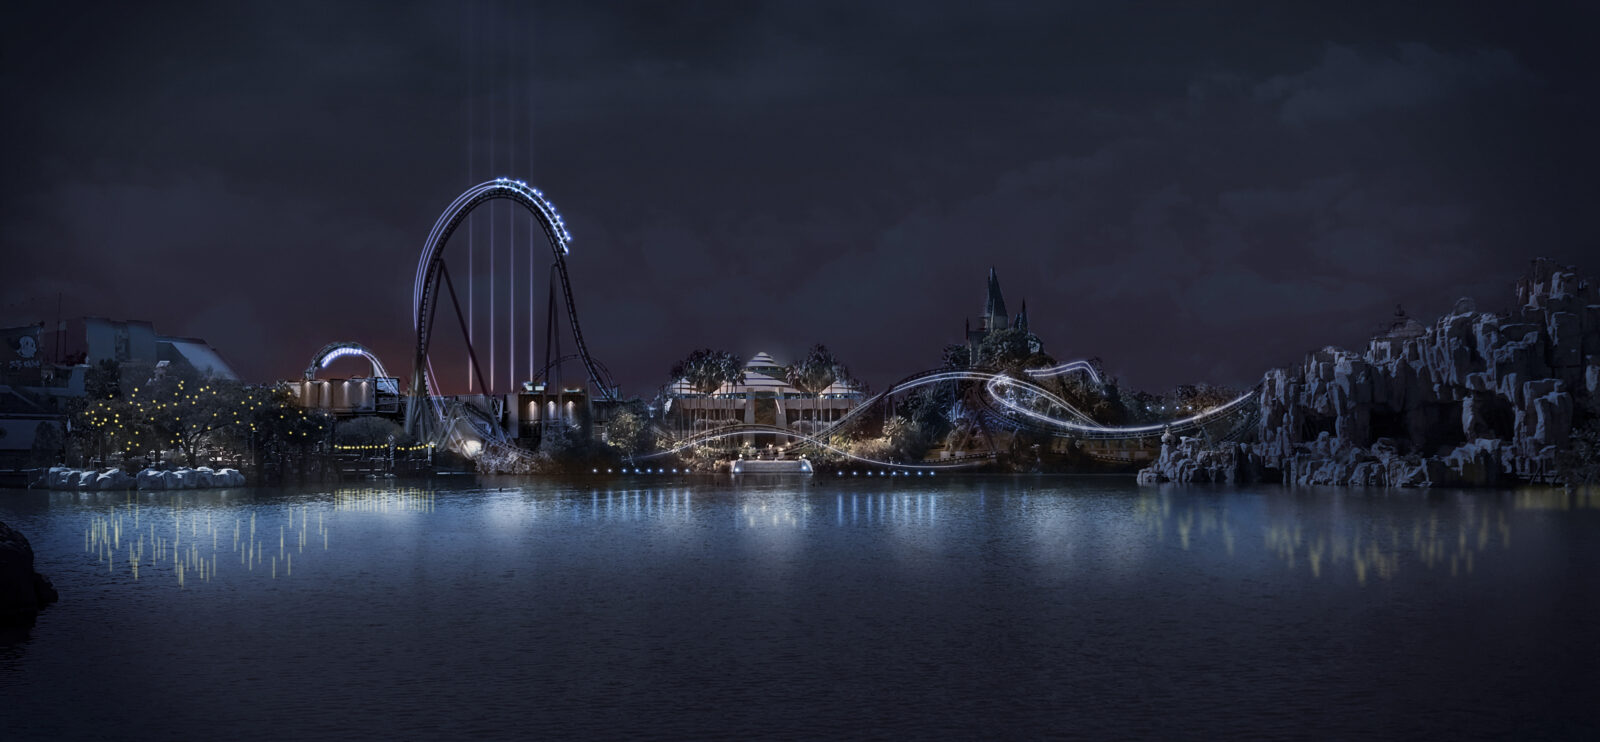 Jurassic World VelociCoaster Universal Orlando Resort Unviersal's Islands of Adventure 2021